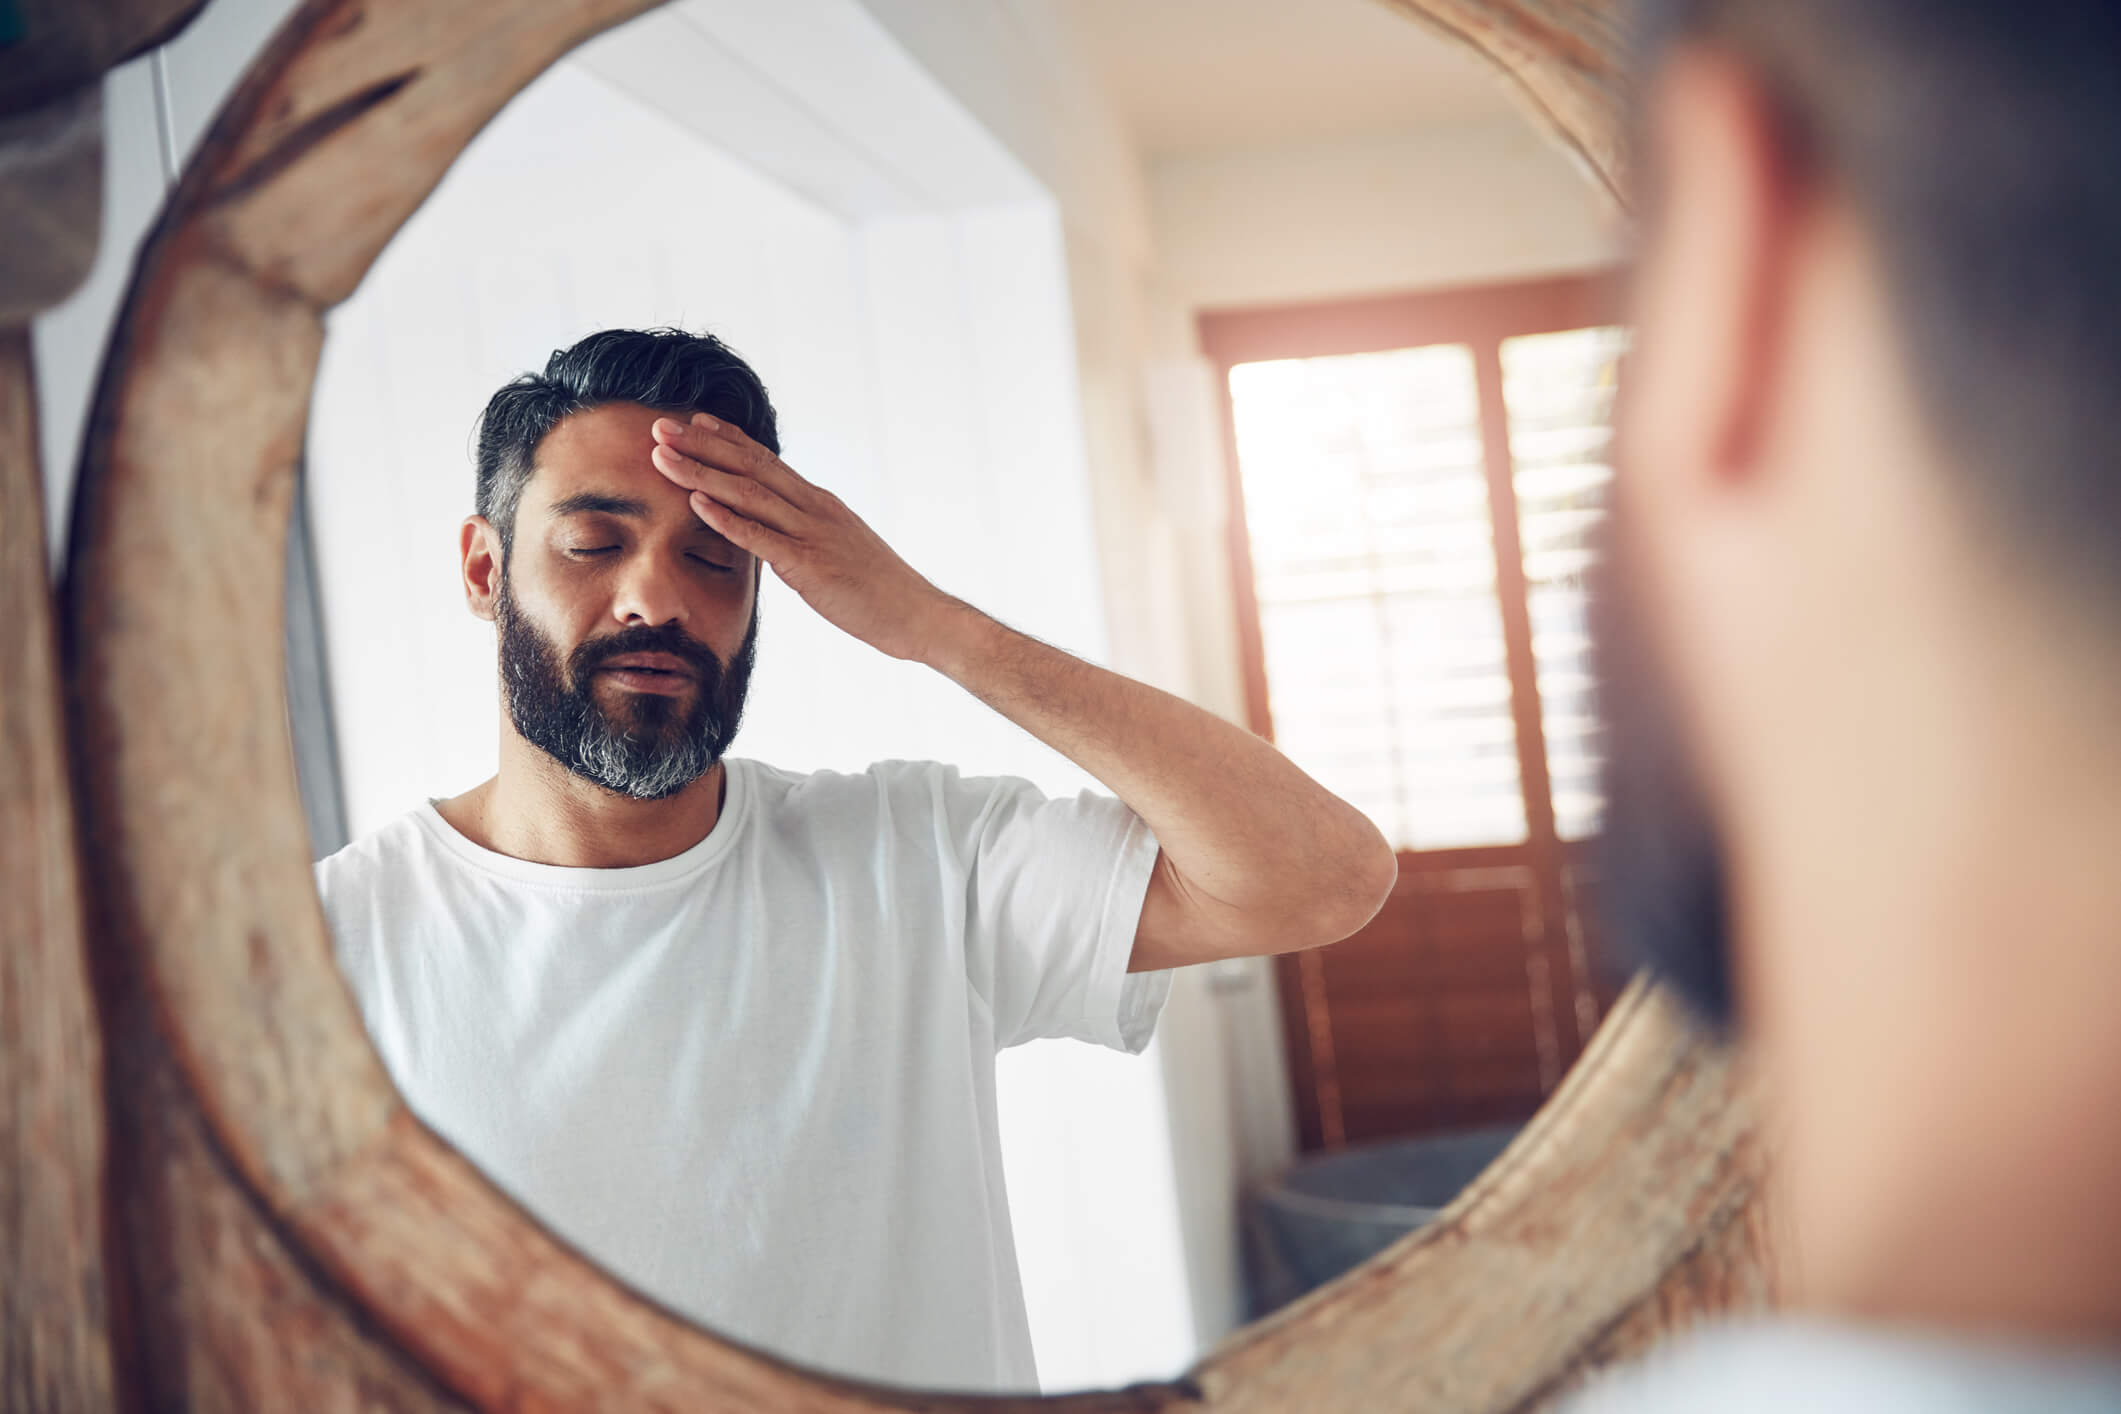 man tired looking in mirror